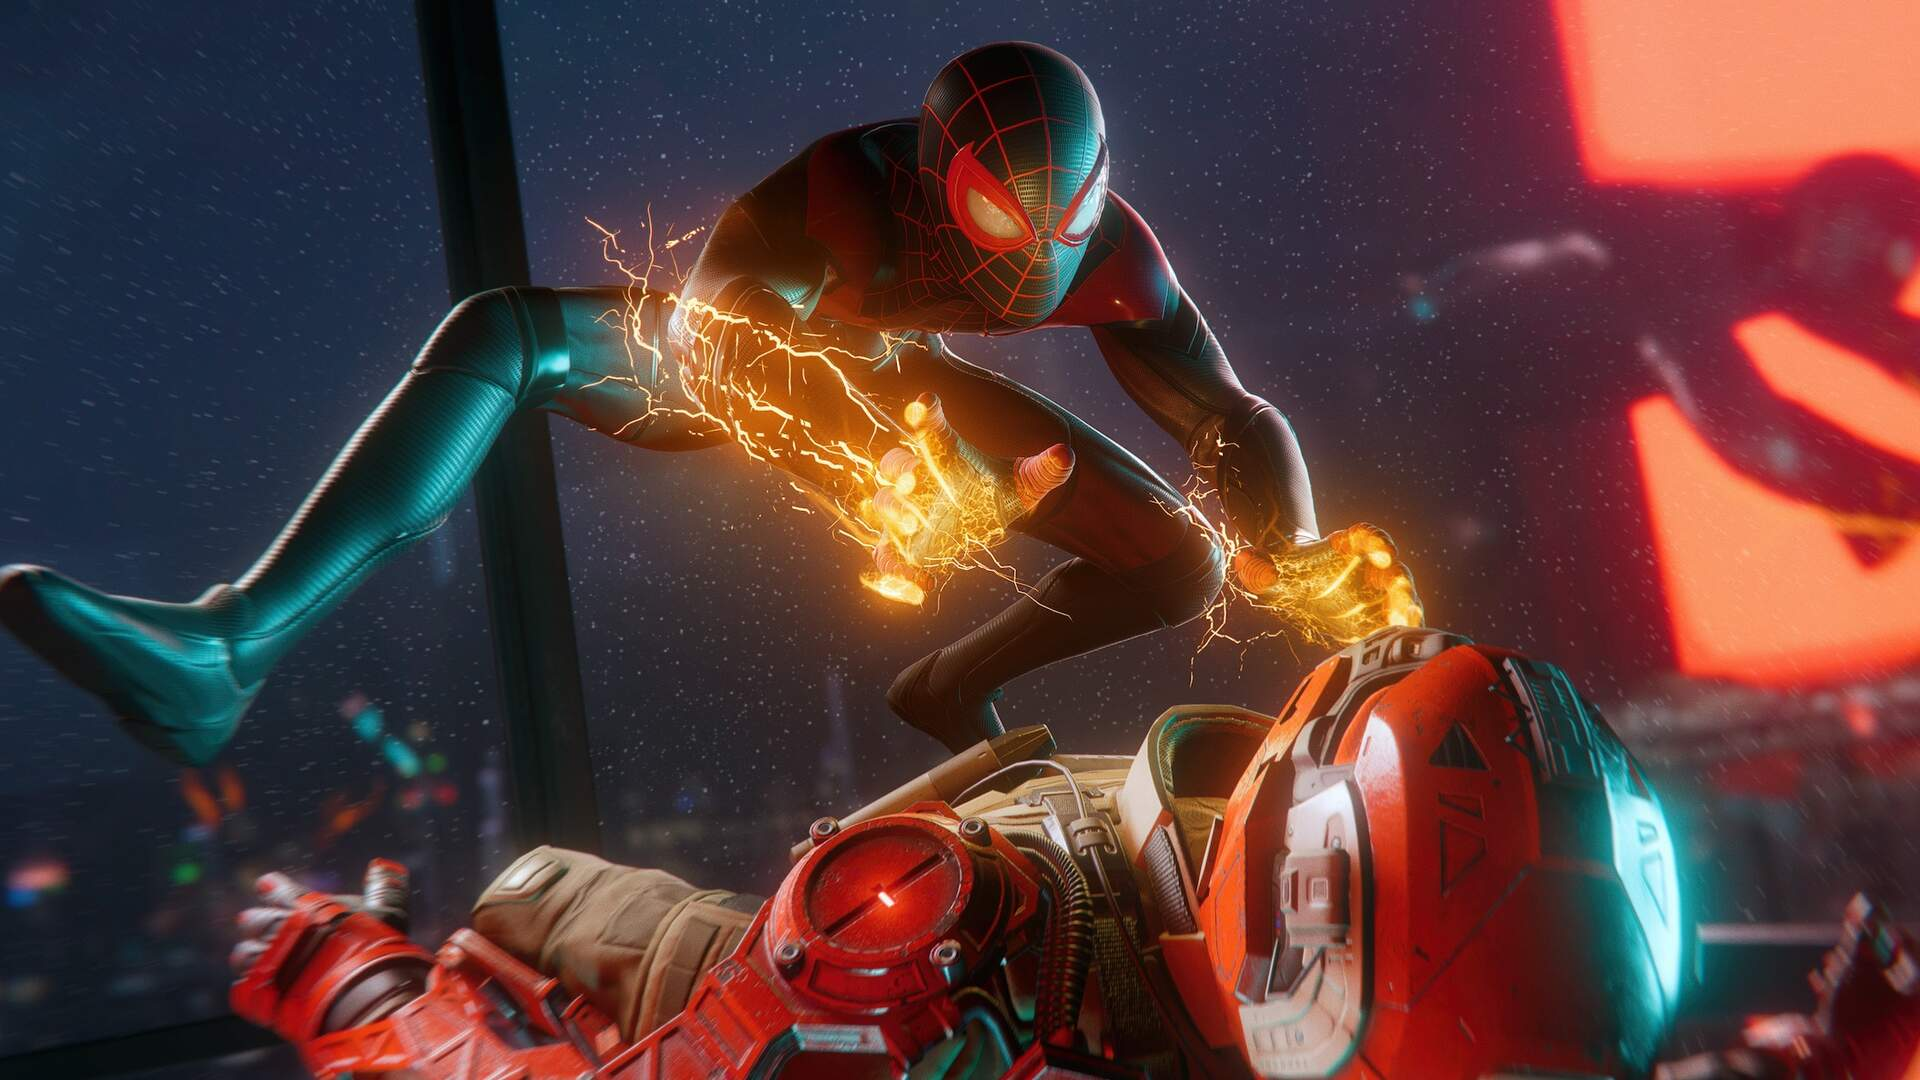 First PS5 Game Box Art Revealed With a Look at Marvel's Spider-Man: Miles Morales